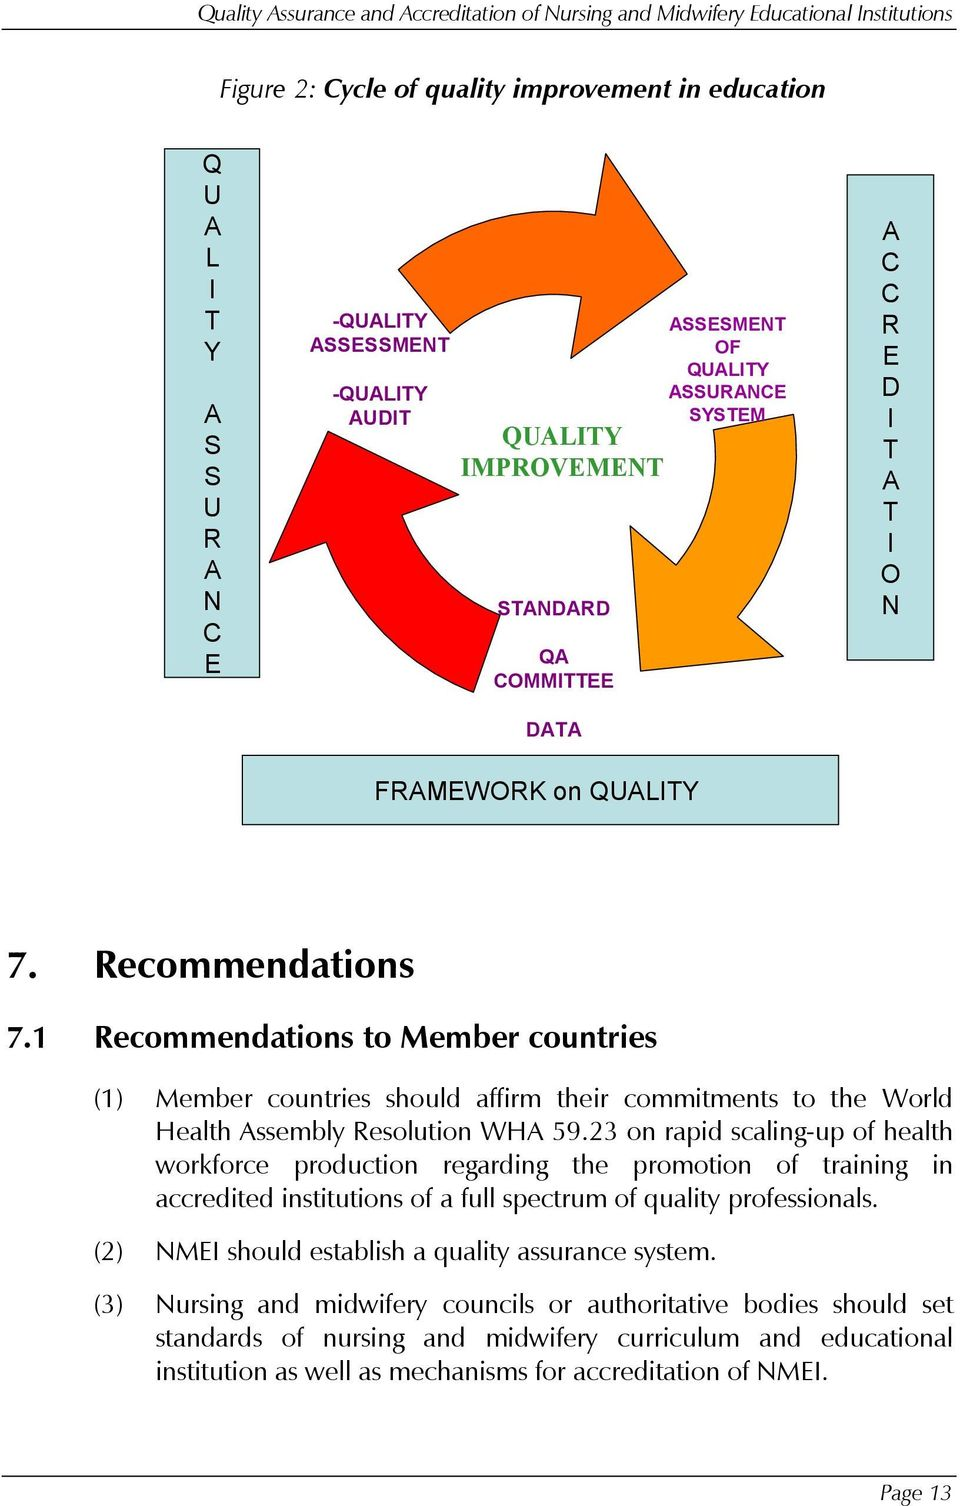 Quality Assurance and Accreditation of Nursing and Midwifery